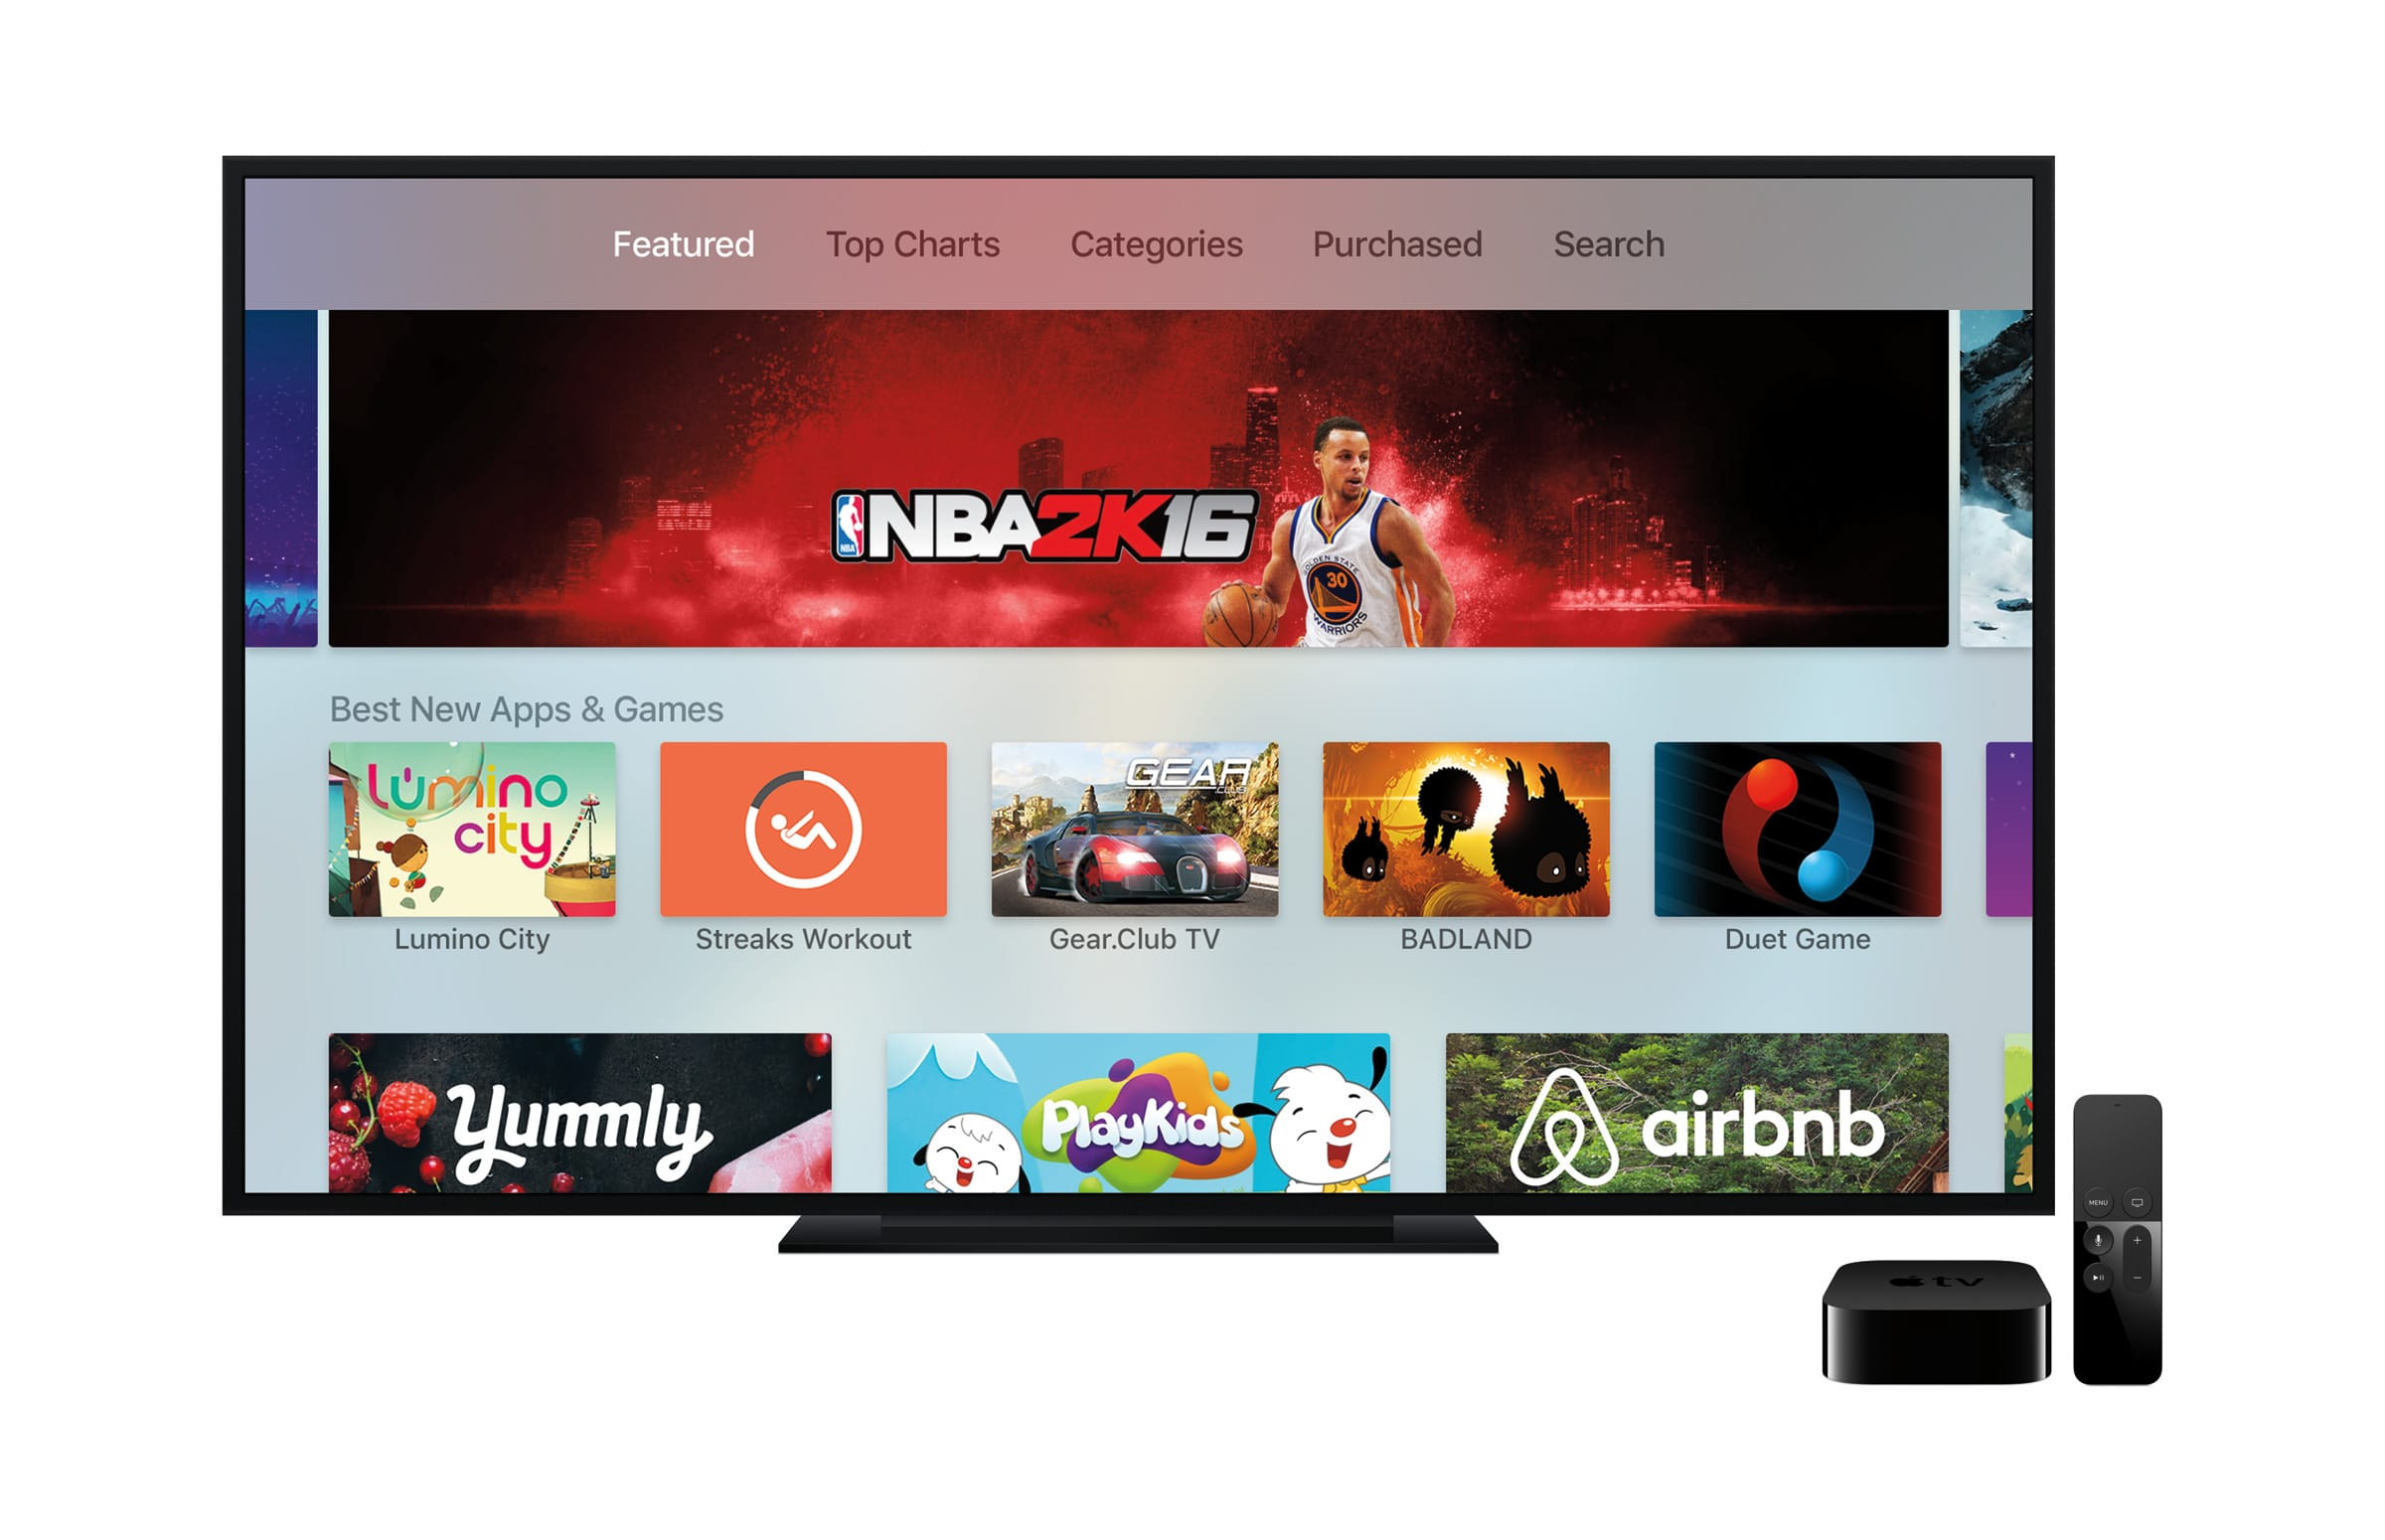 apple-tv-with-siri-remote-and-tv